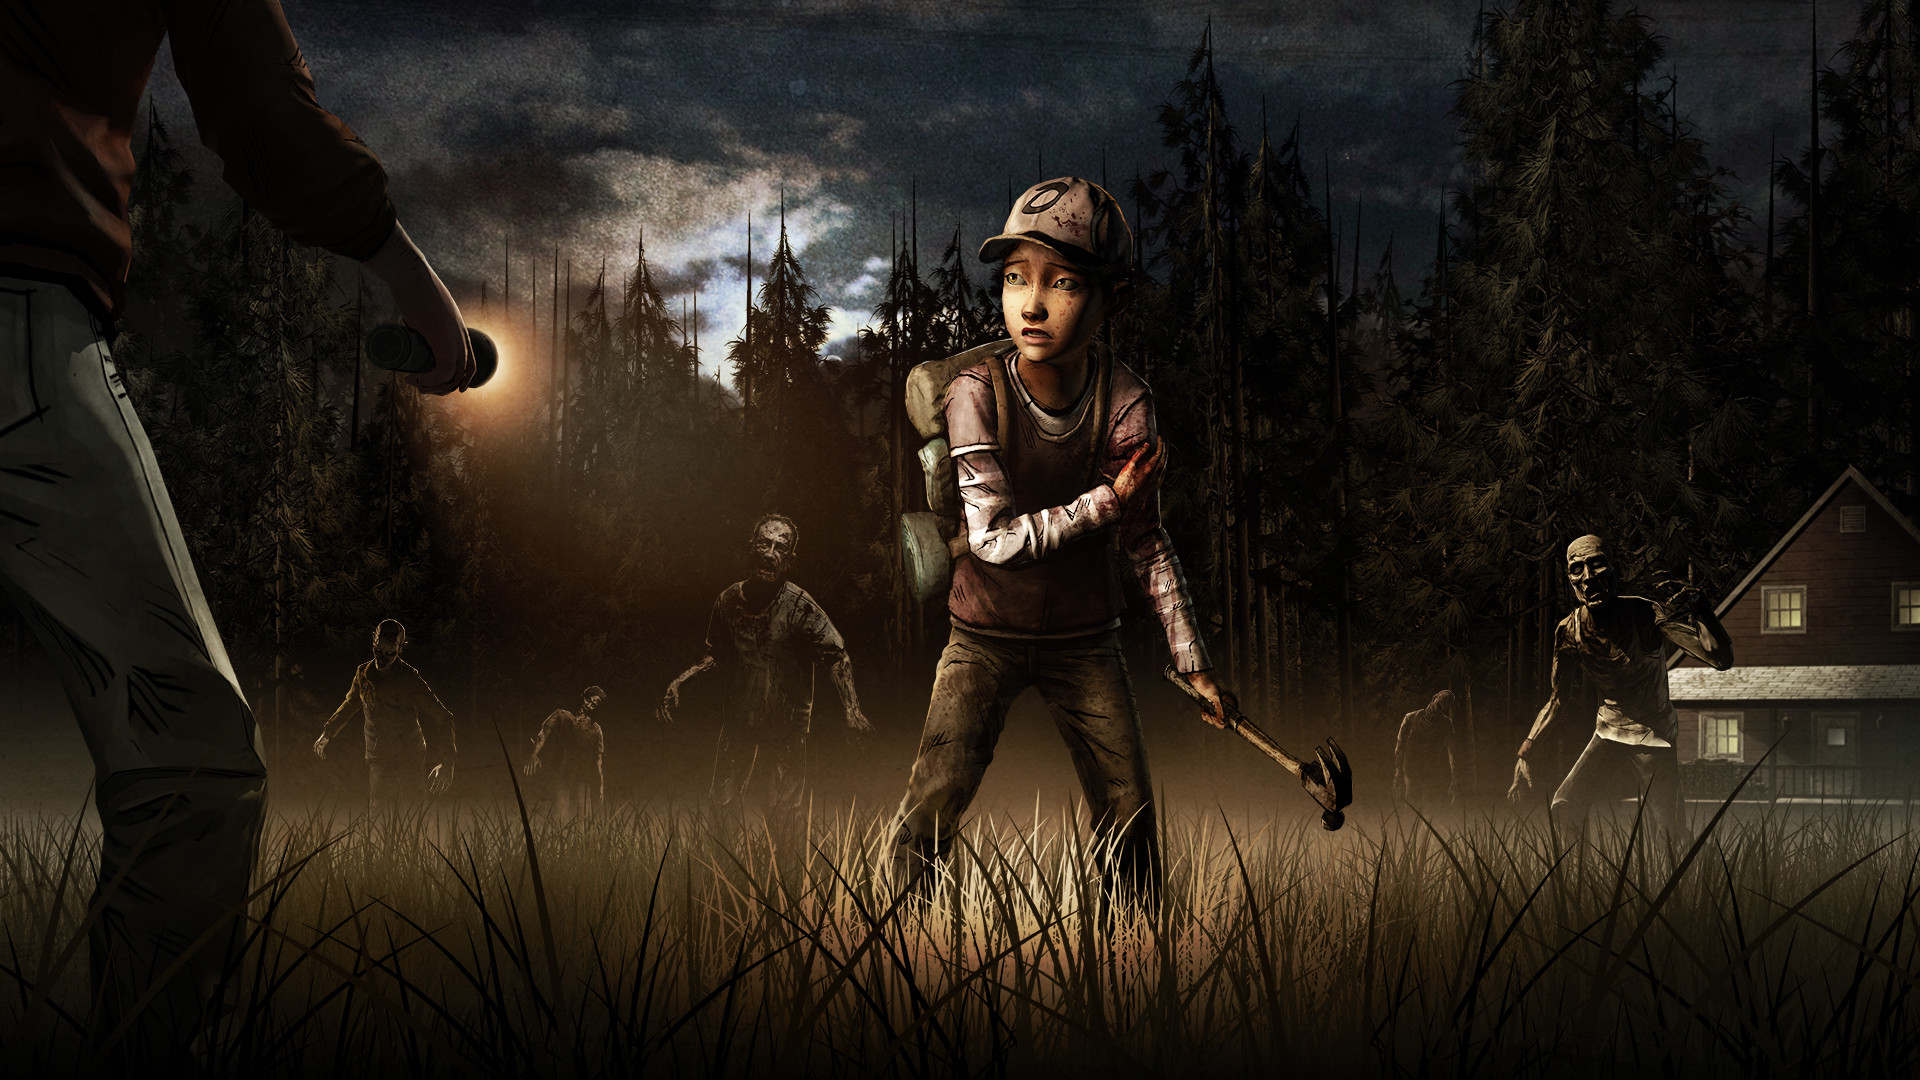 1920x1080 25 The Walking Dead: Season 2 HD Wallpapers | Backgrounds - Wallpaper Abyss